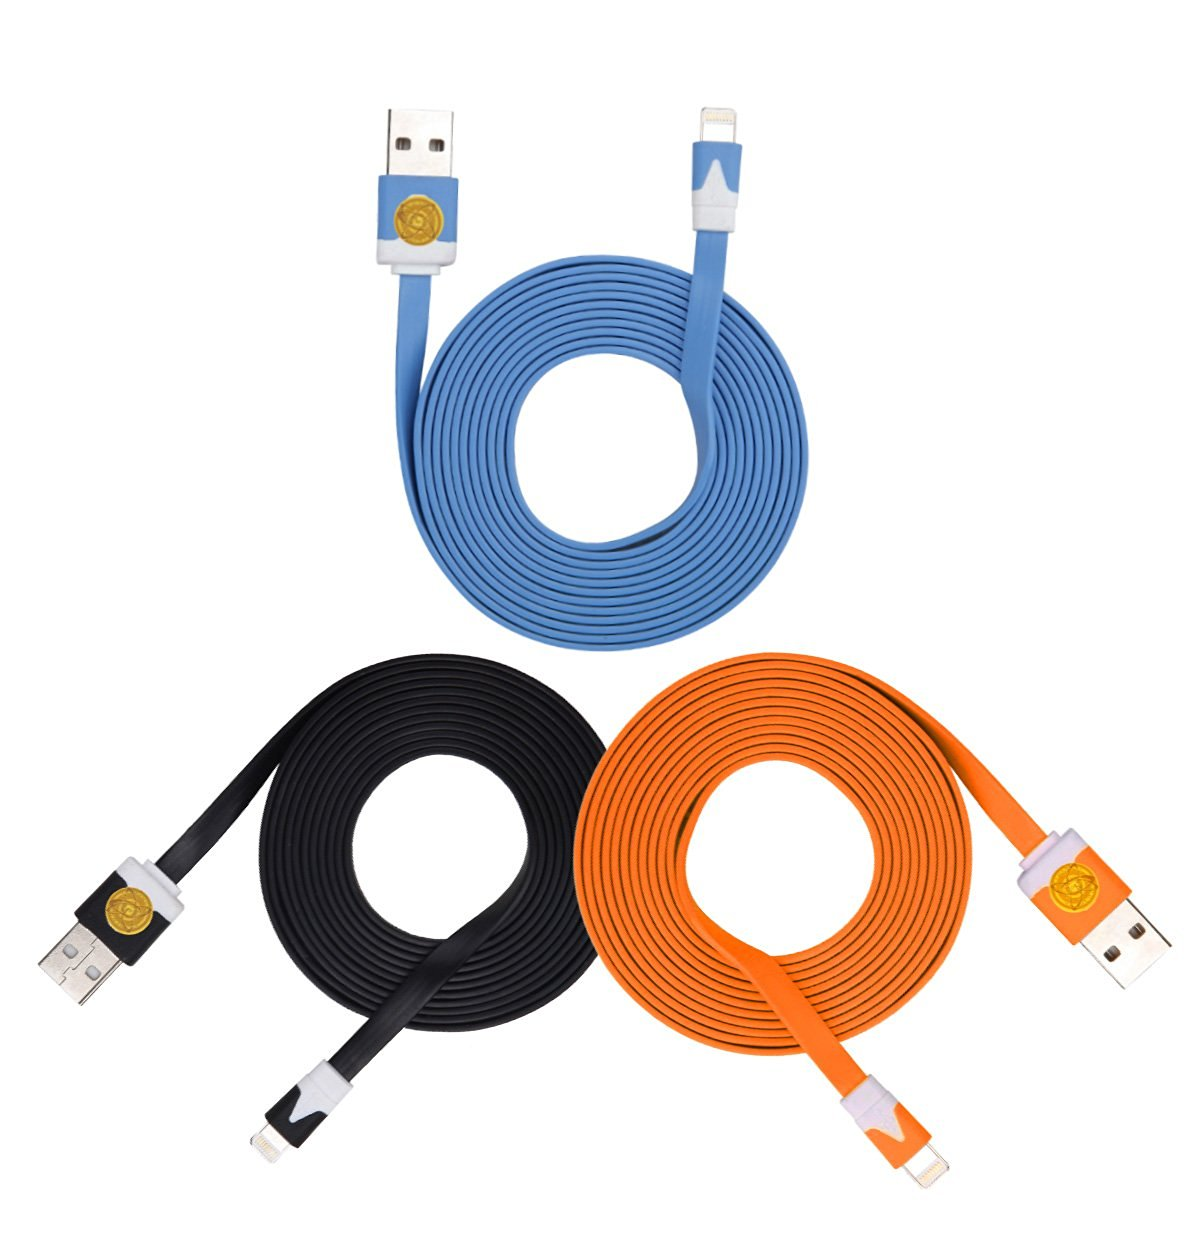 2M Heavy Duty Flat Noodle Lightning USB Cable for Apple iPhone 6,6S -Blk Blu Org